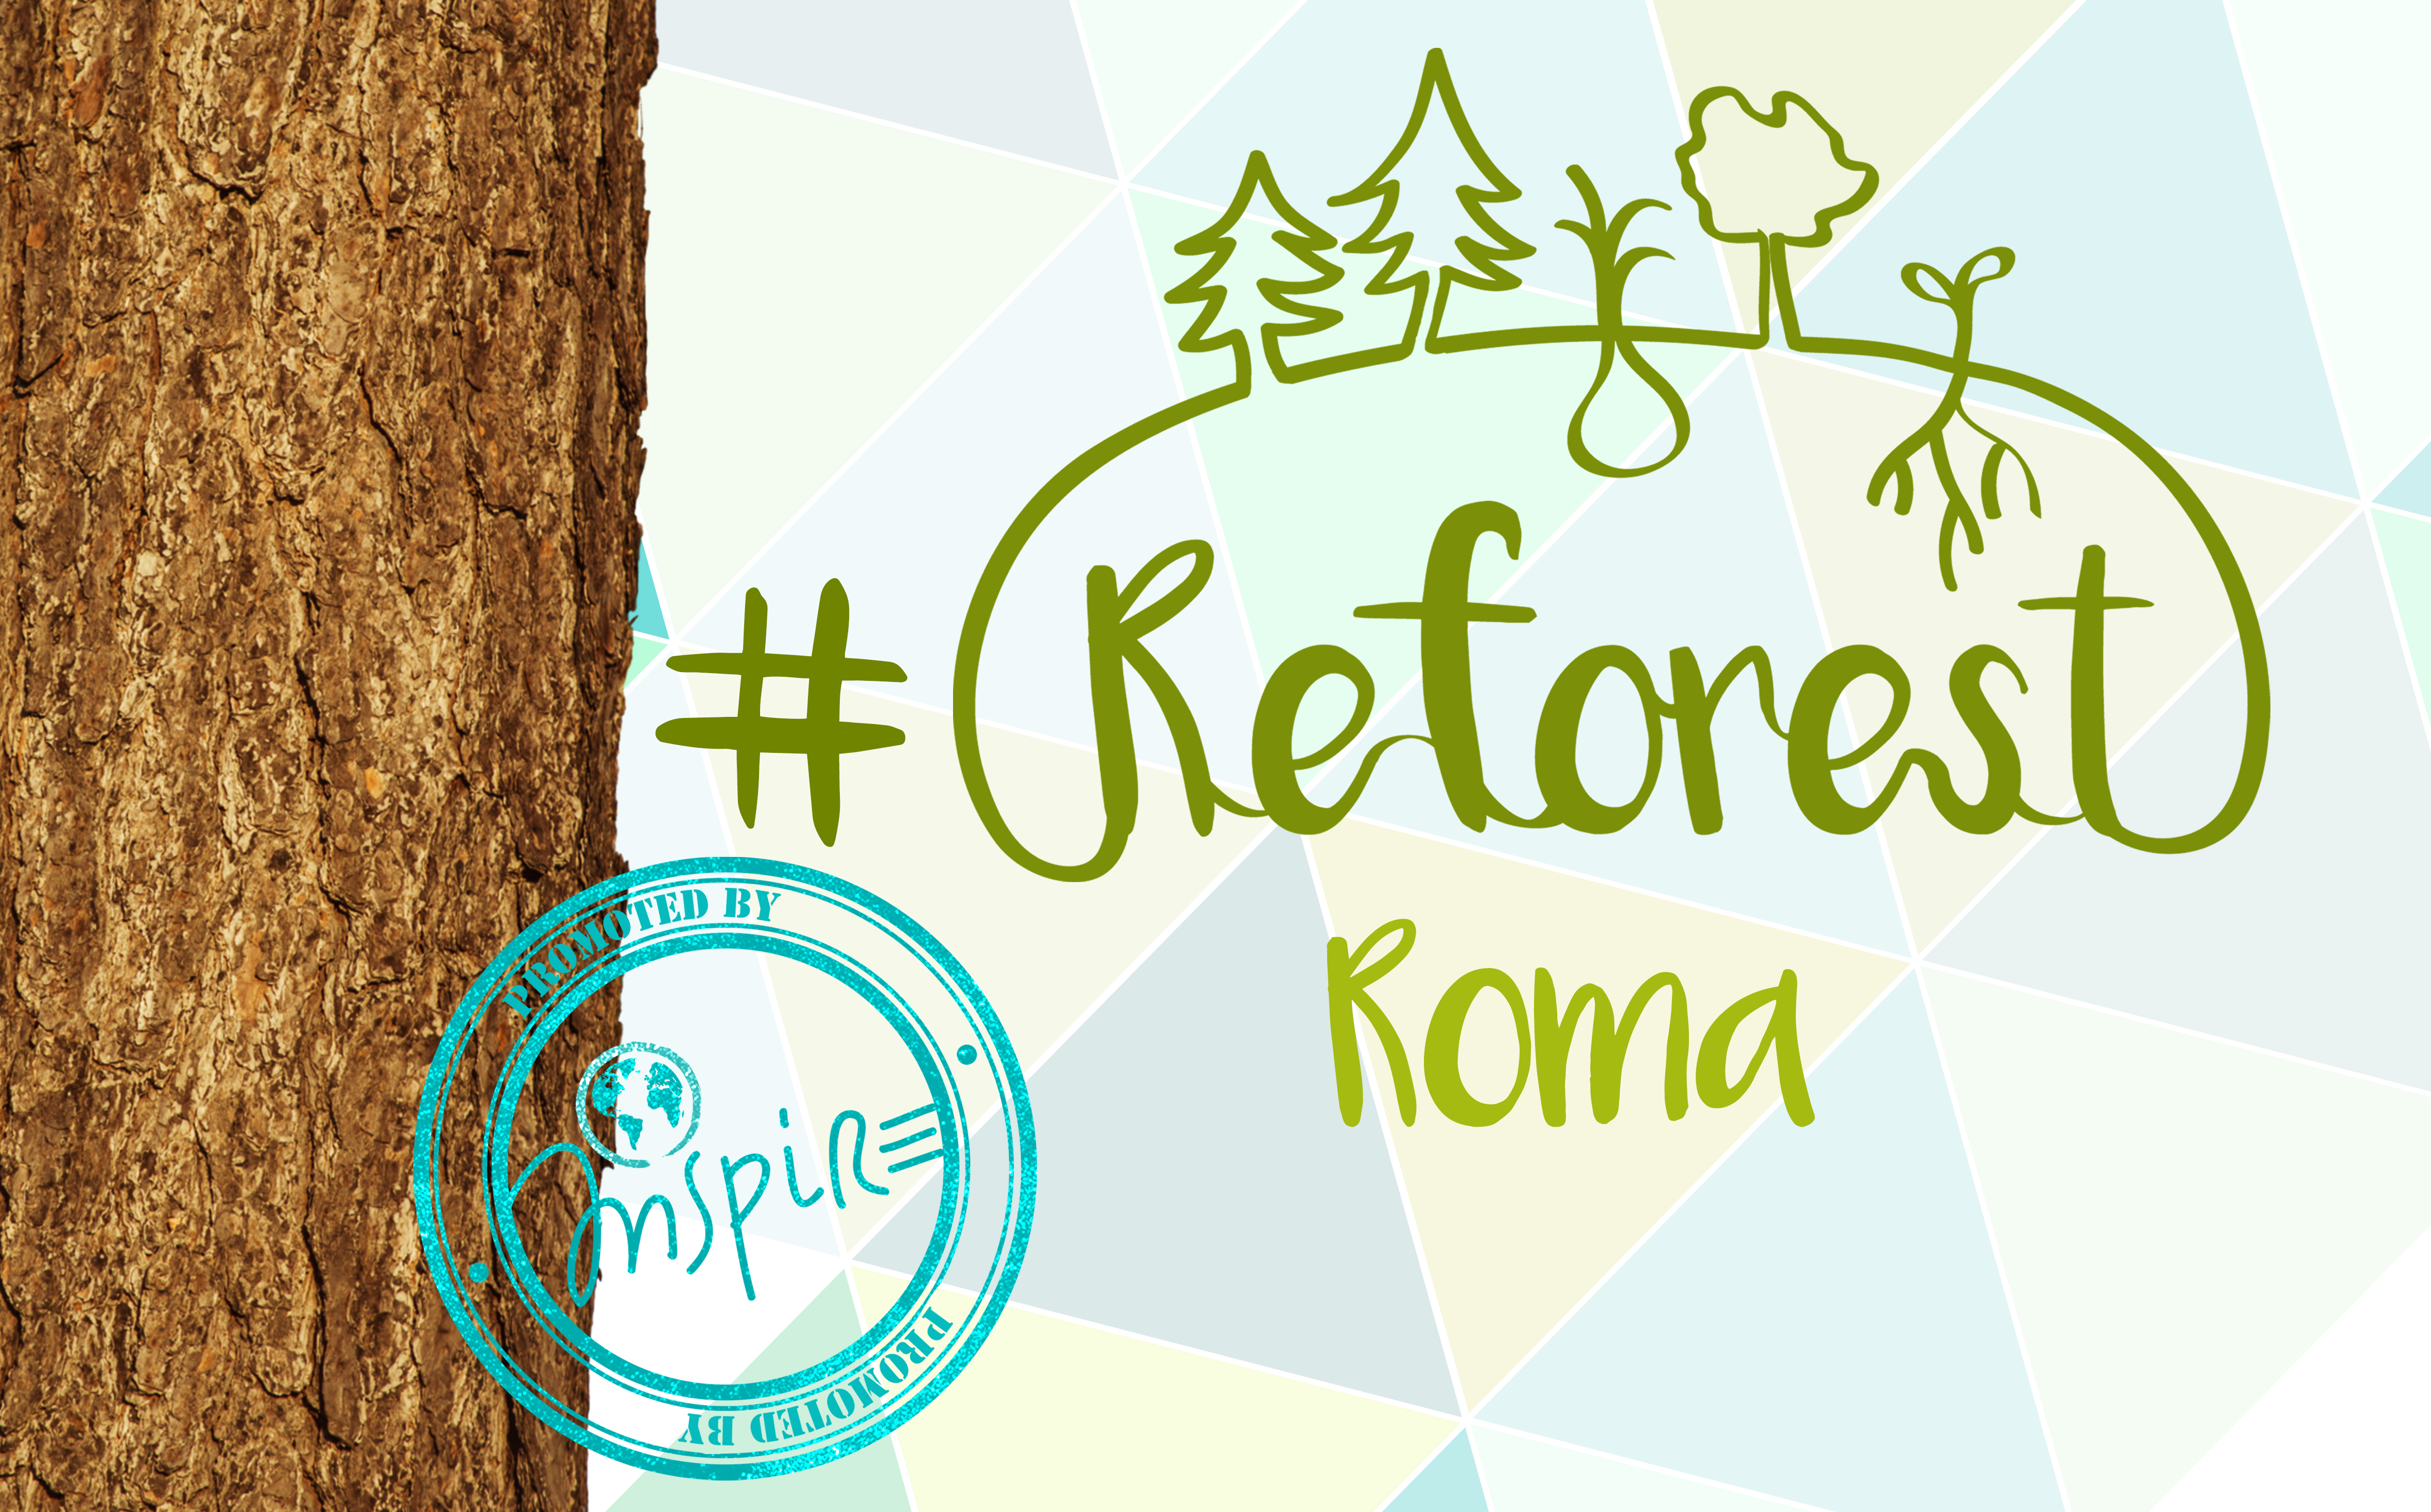 #Reforest Rome